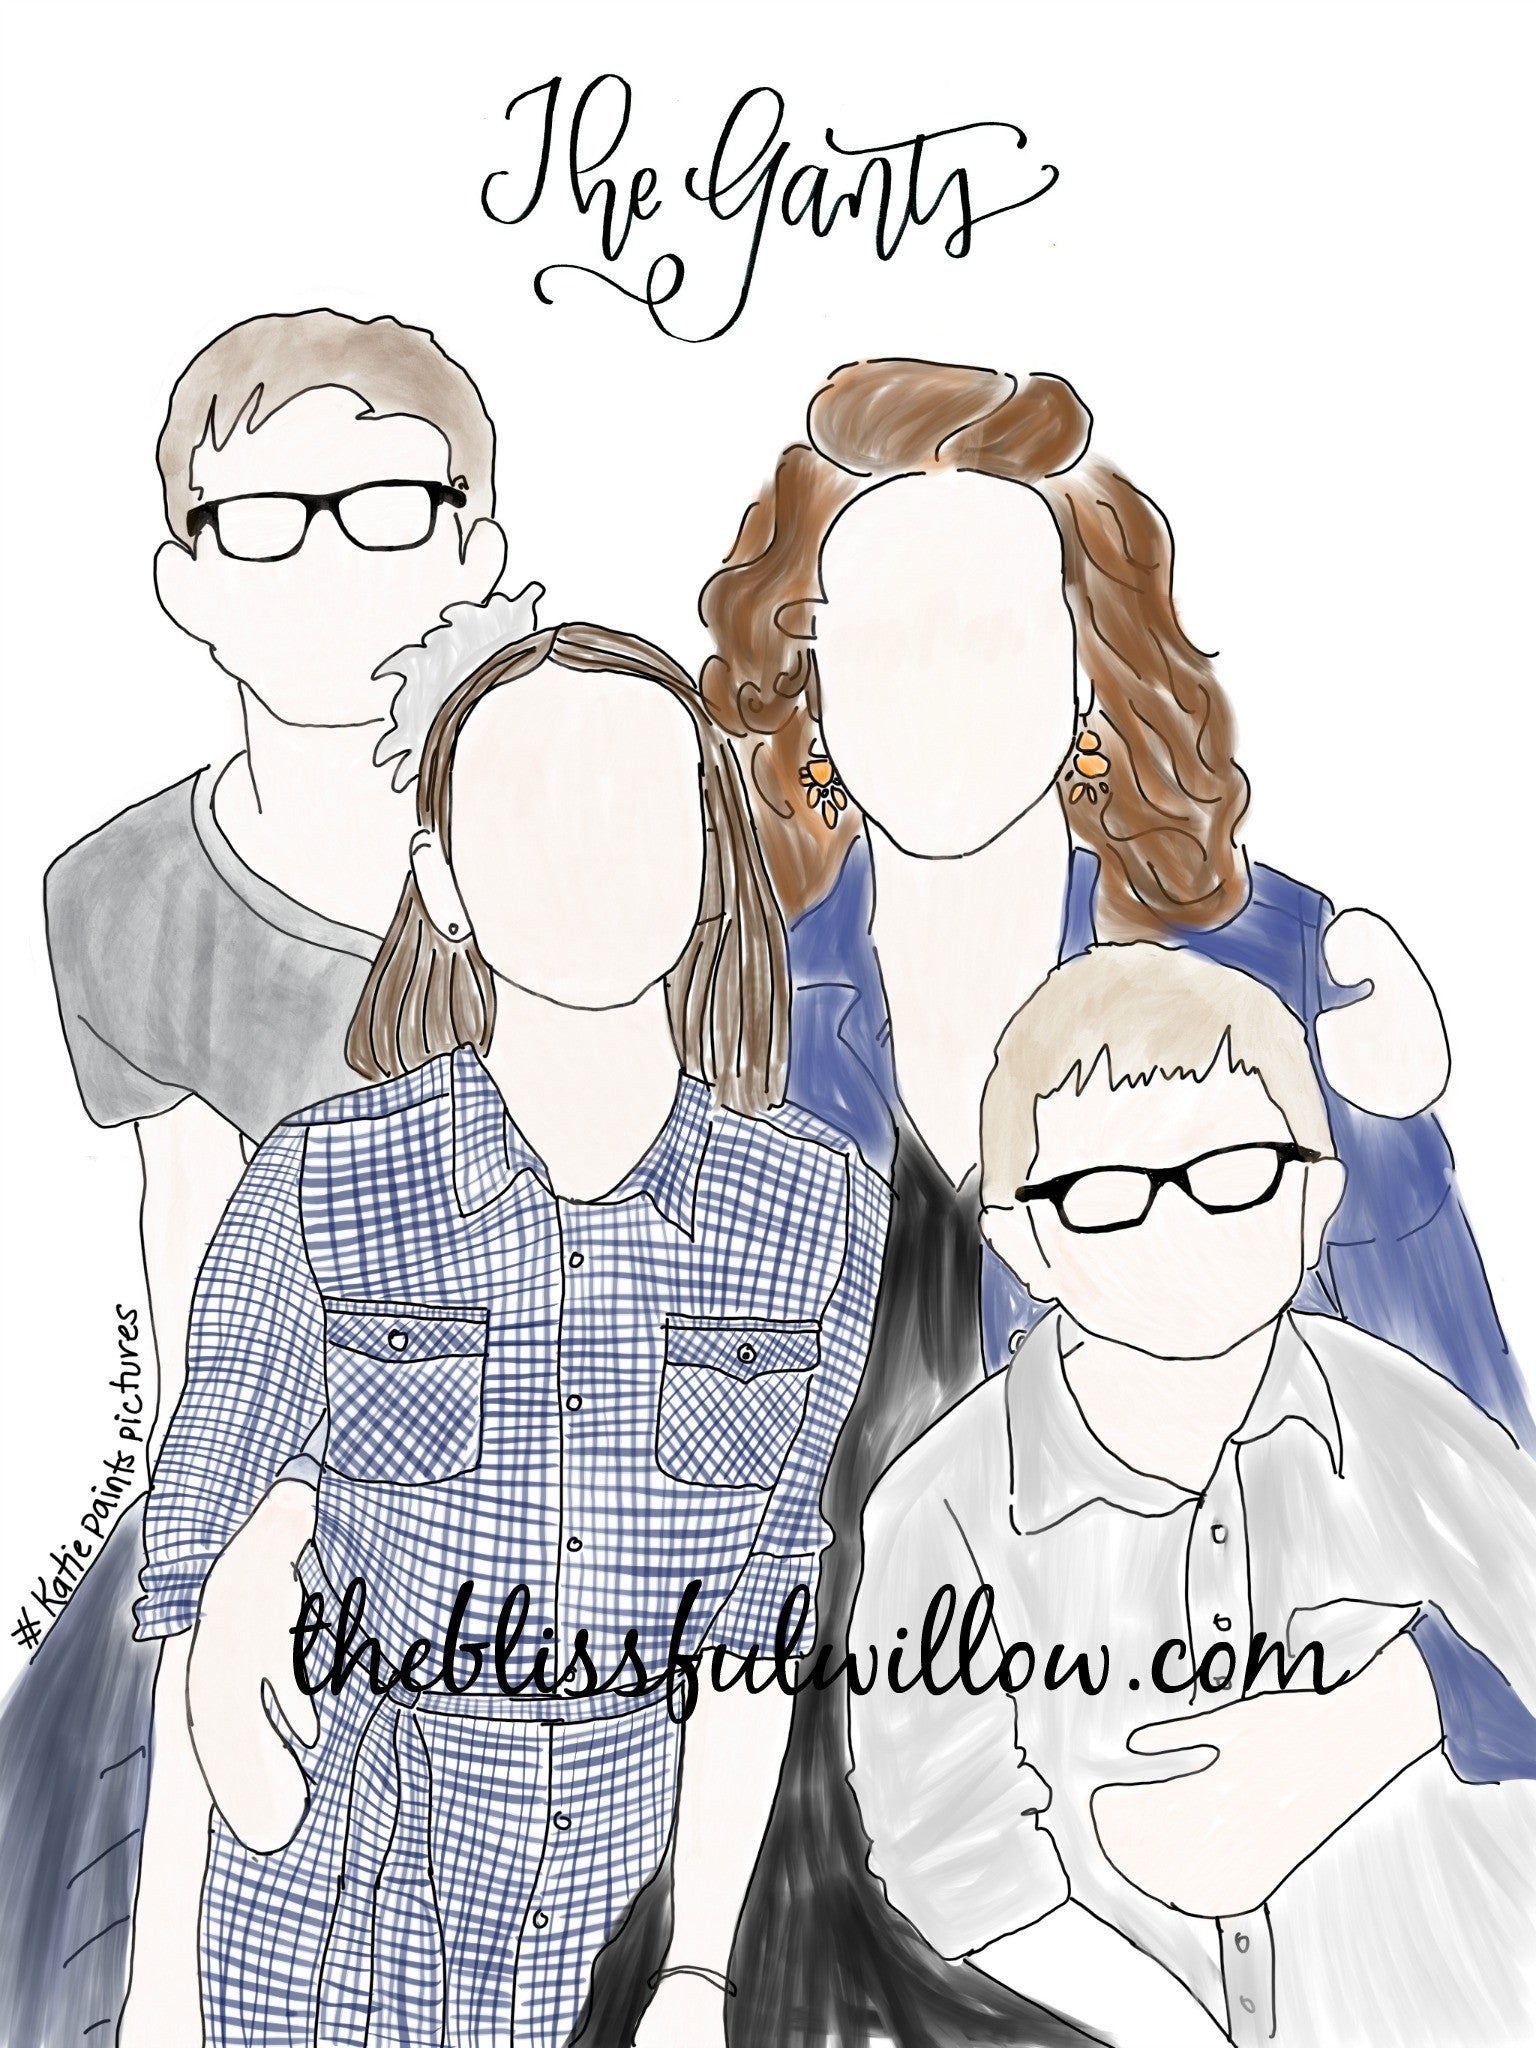 Custom family illustration 2-3 People or Pets